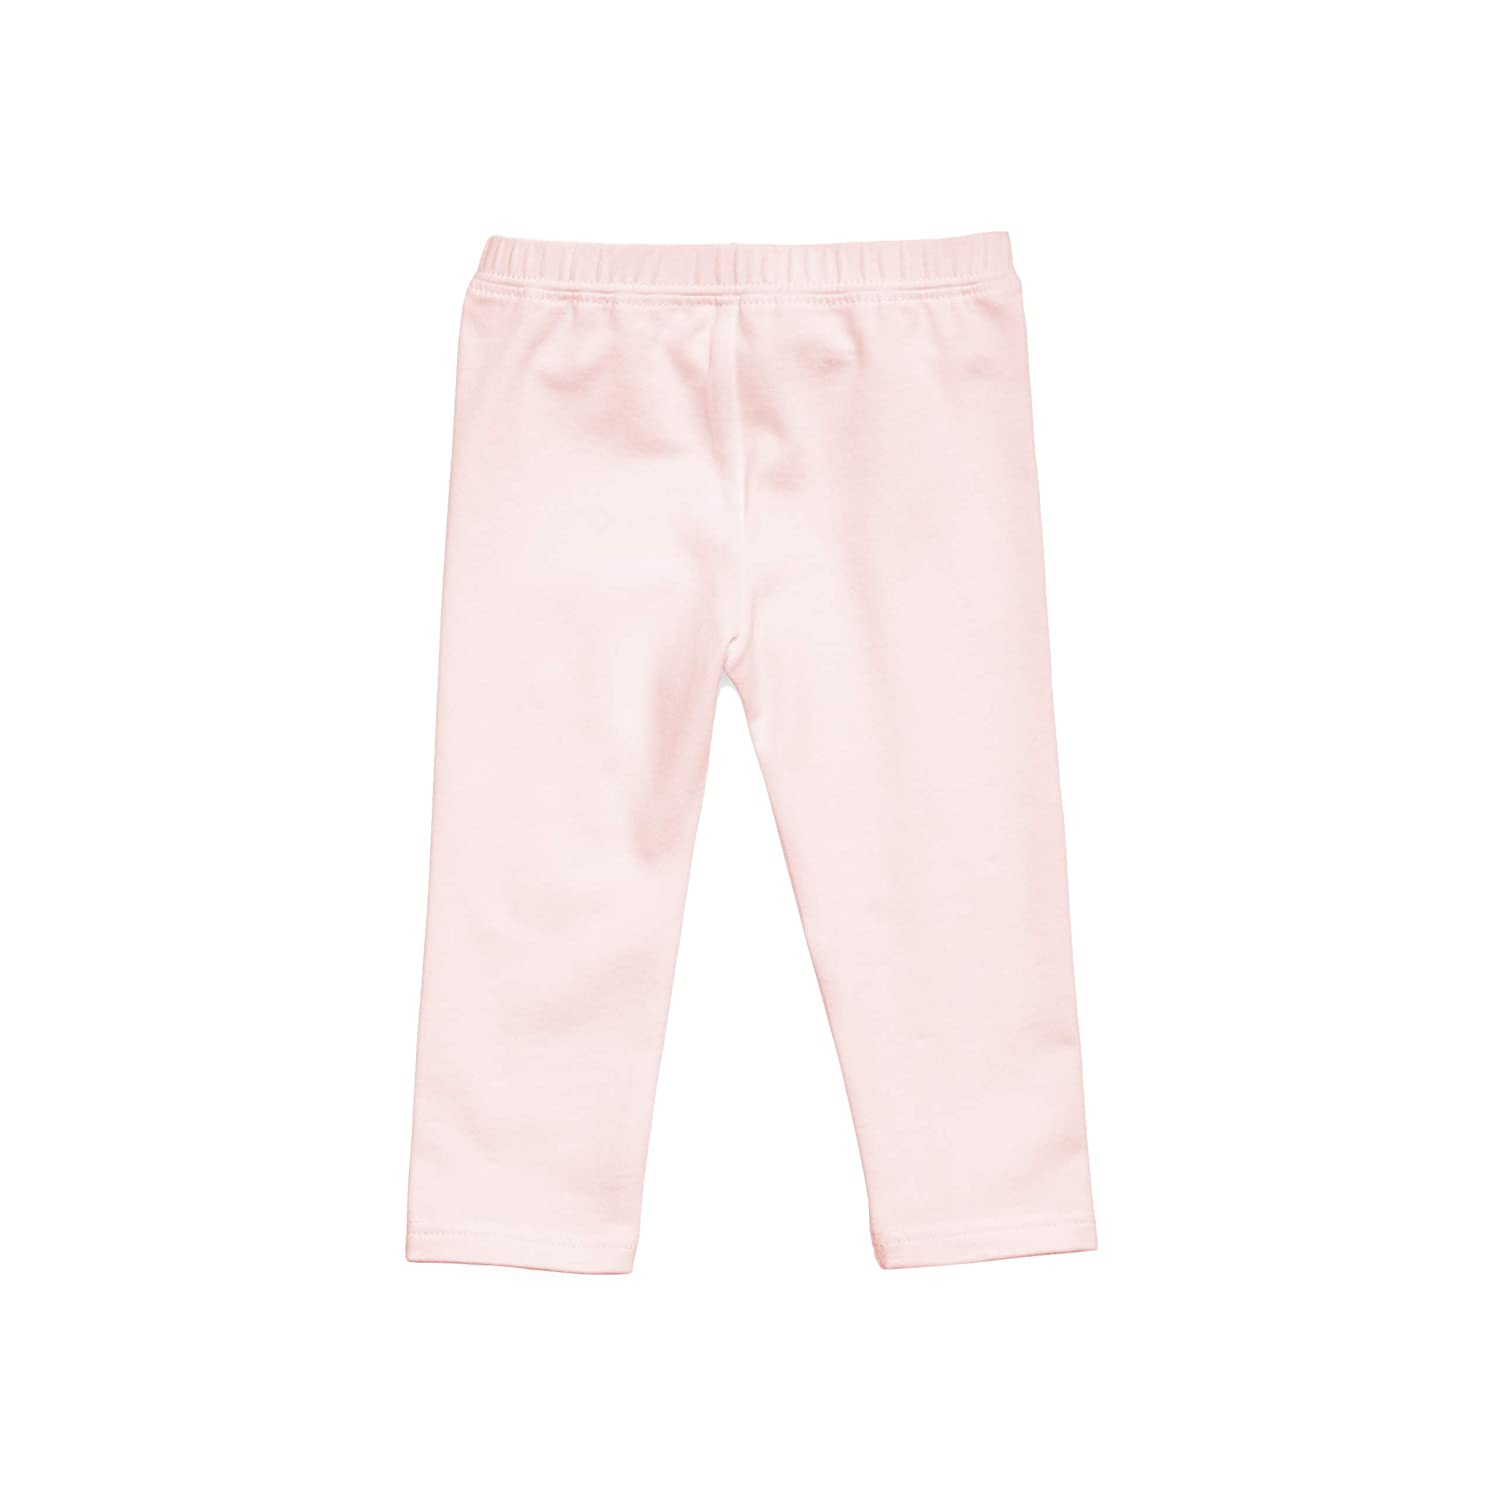 1212 Baby Legging Organic Pima Cotton Allergy Friendly